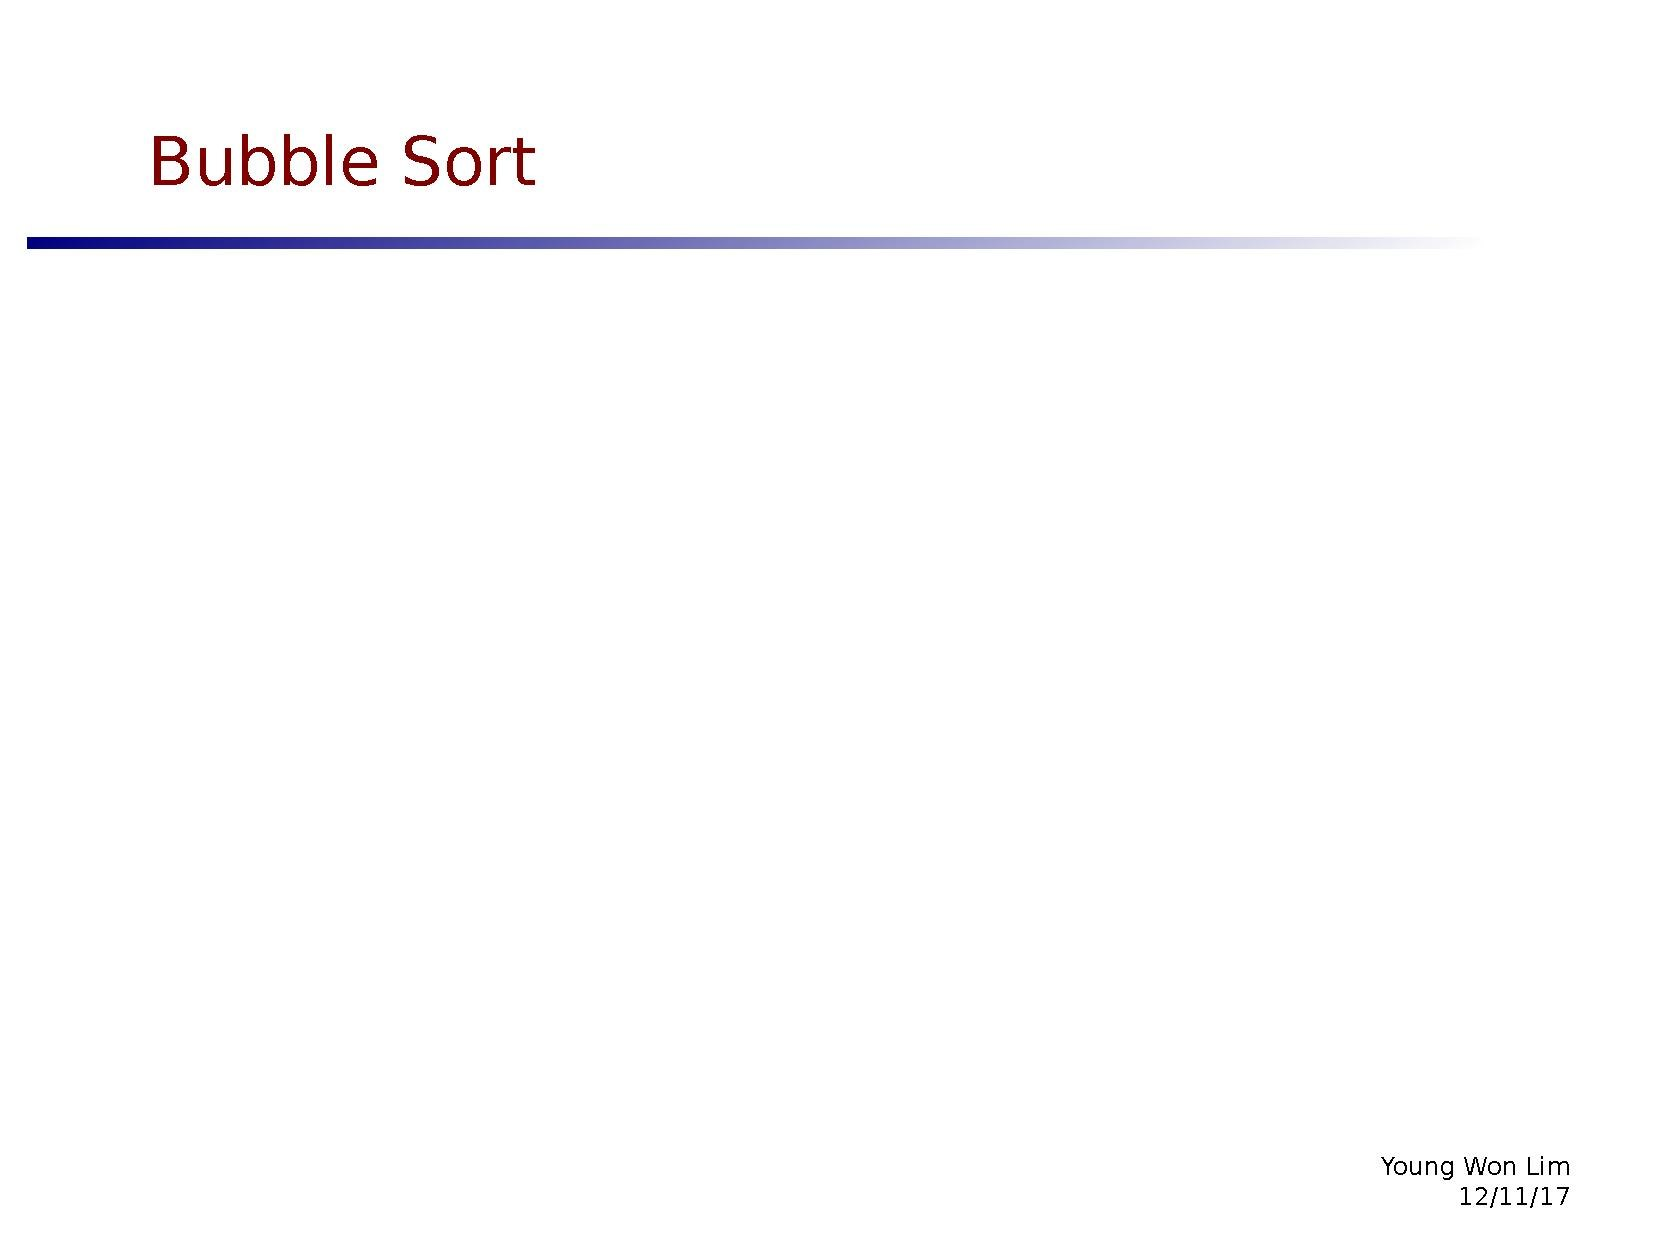 Bubble Sort Pdf